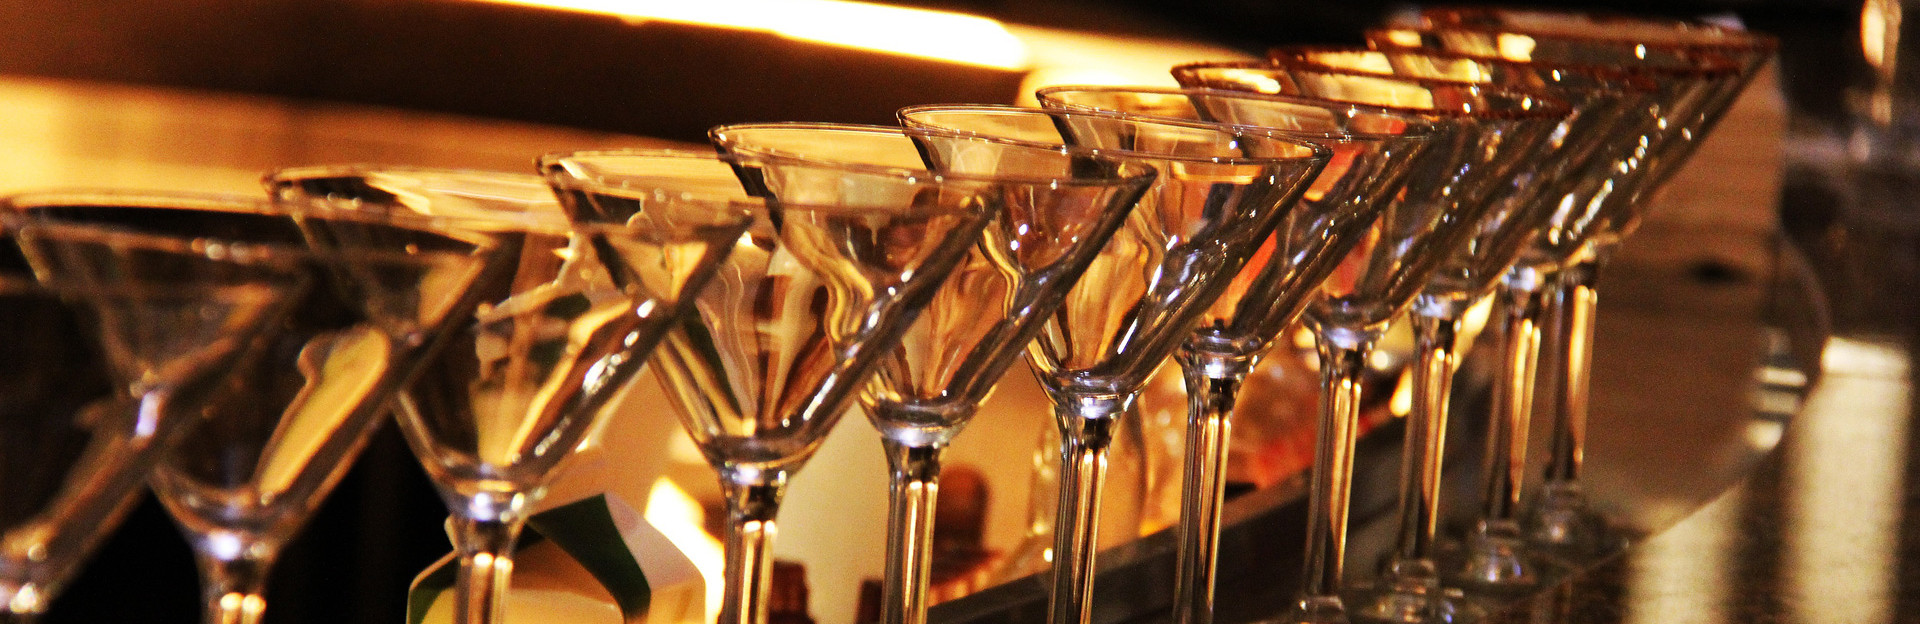 1920x650_martini-glass-623438